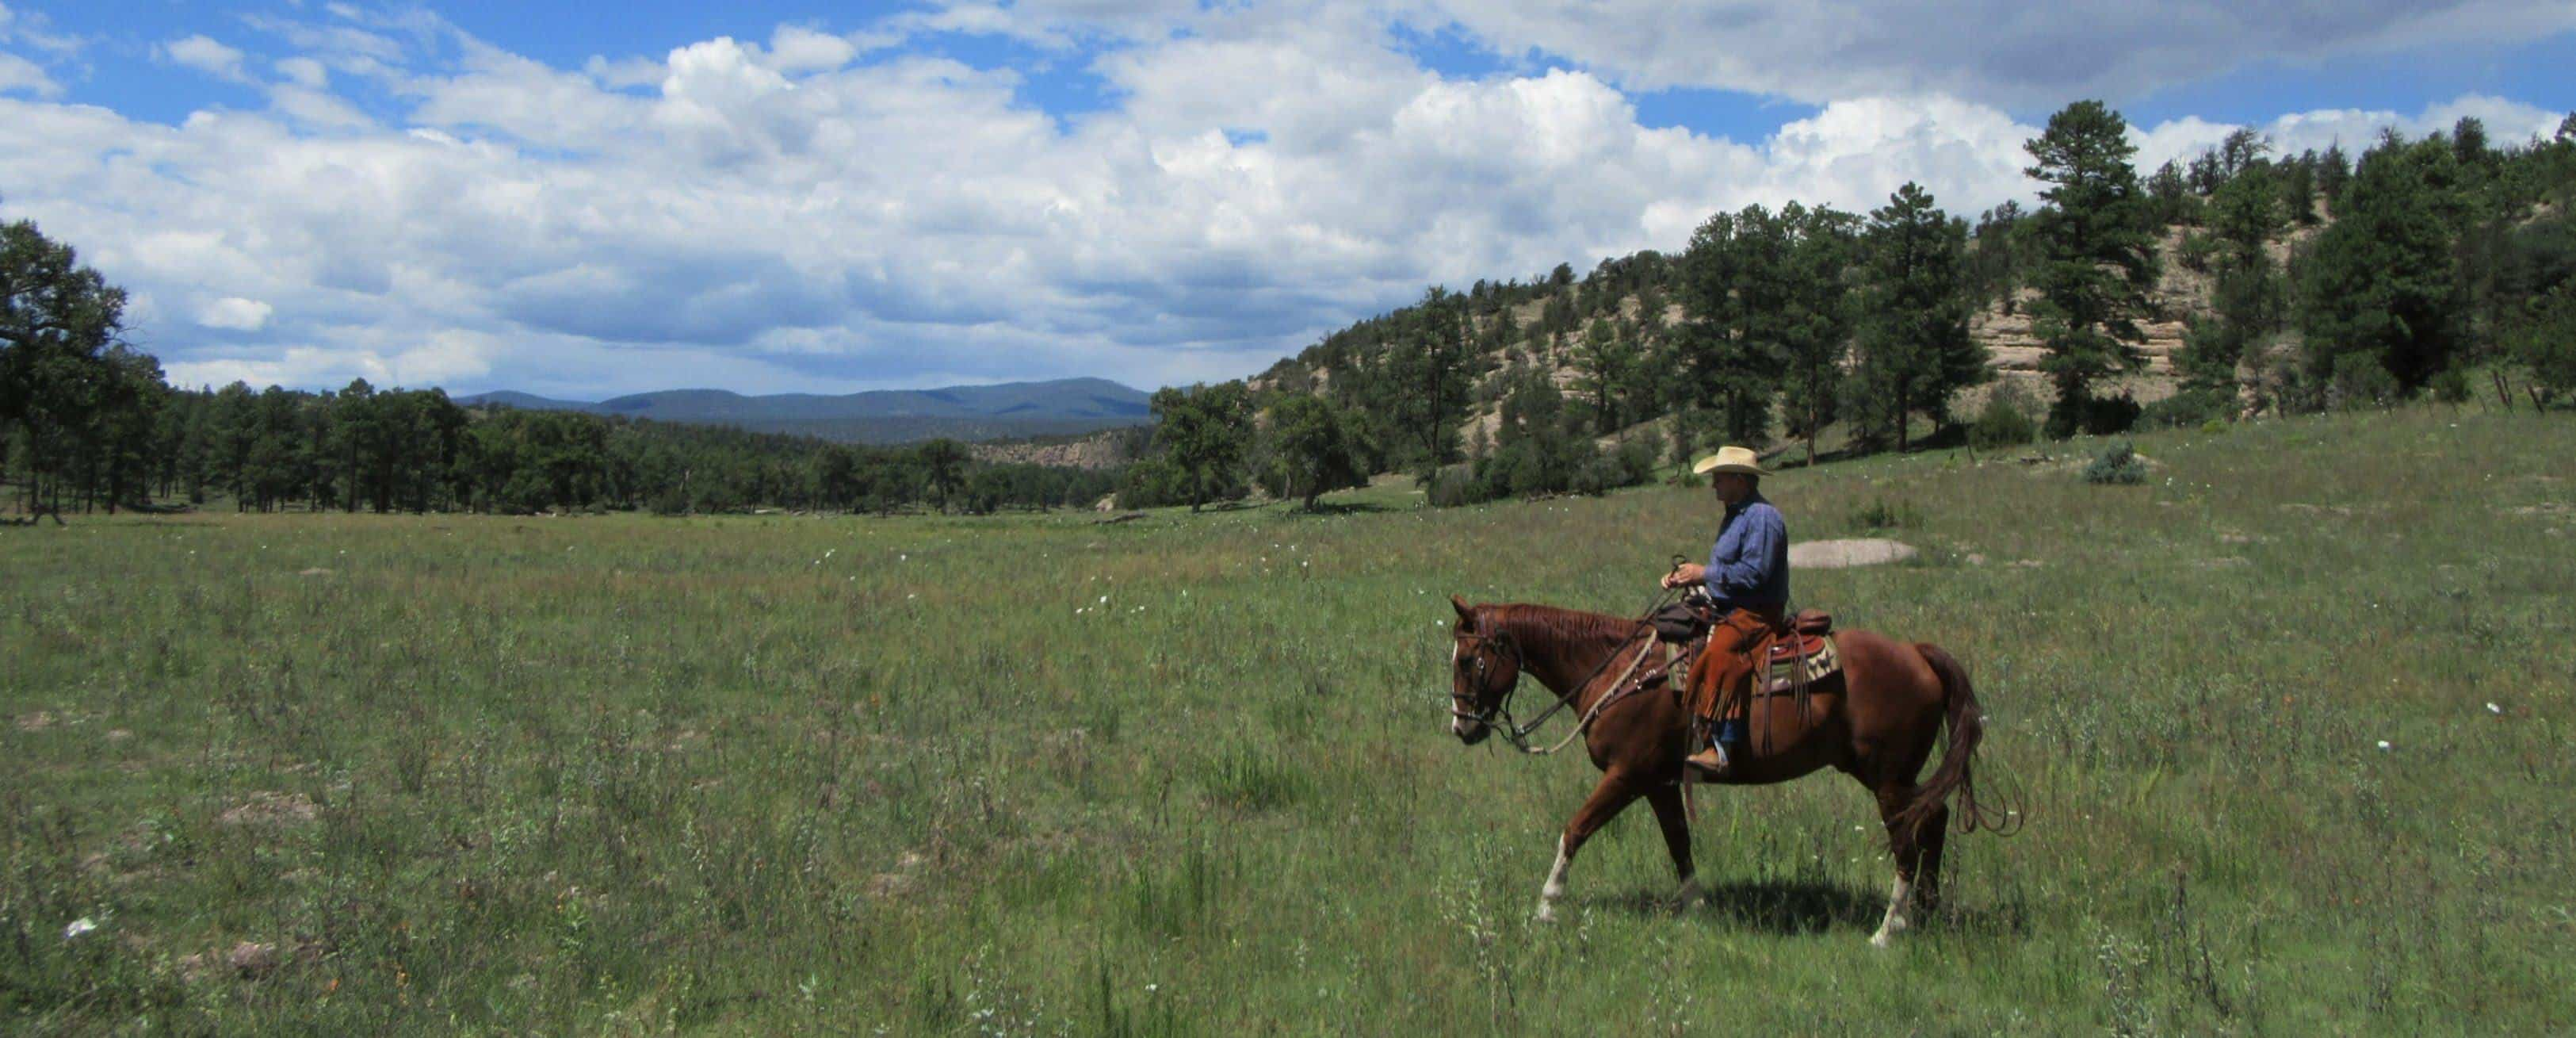 Trail Riding, Hoyt Meadow, Geronimo Trail Guest Ranch, Riders, Horseback Riding, New Mexico, Gila National Forest